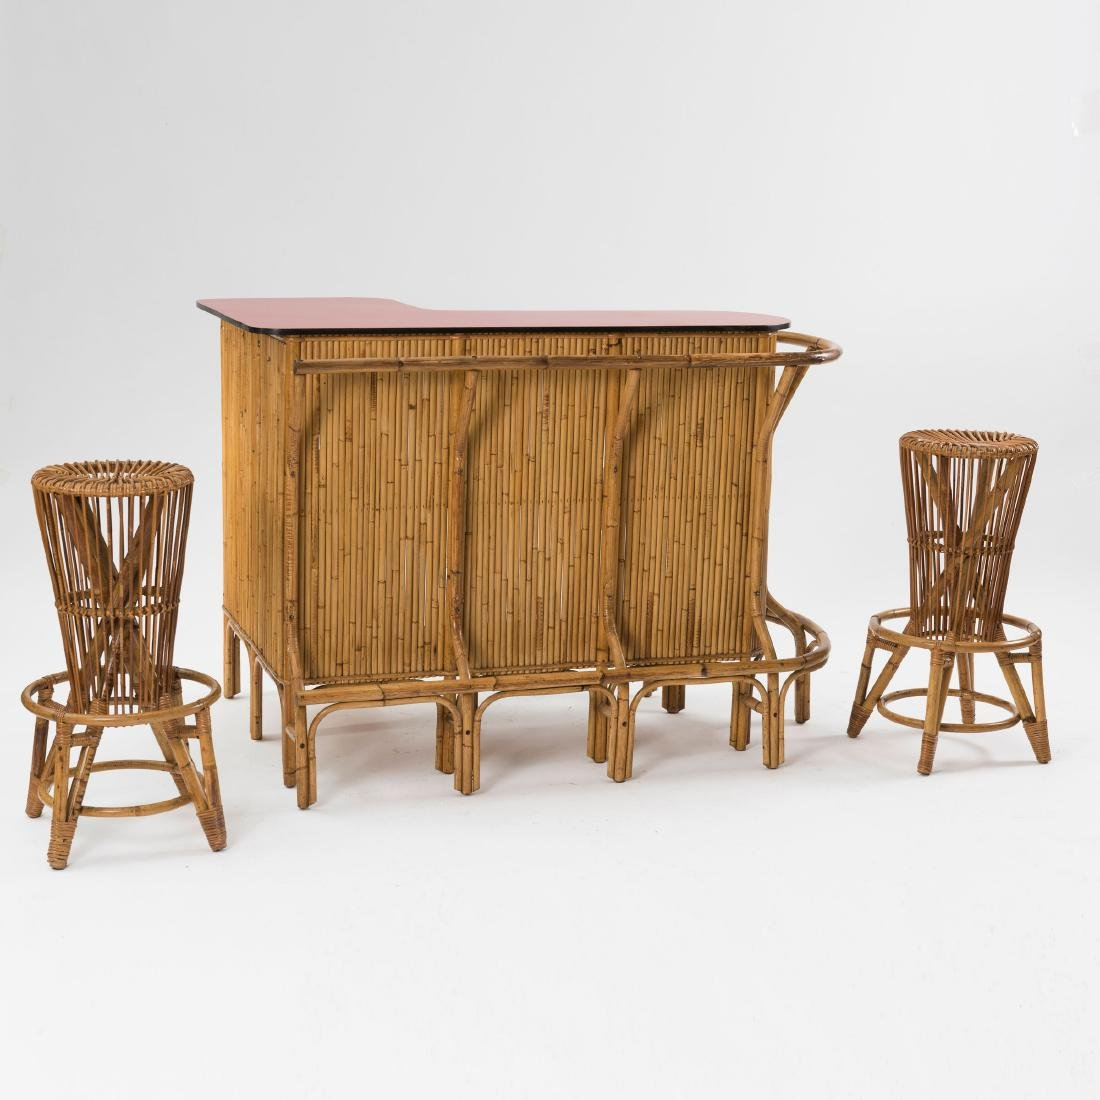 Bar counter with two bar stools, c. 1955 - 2